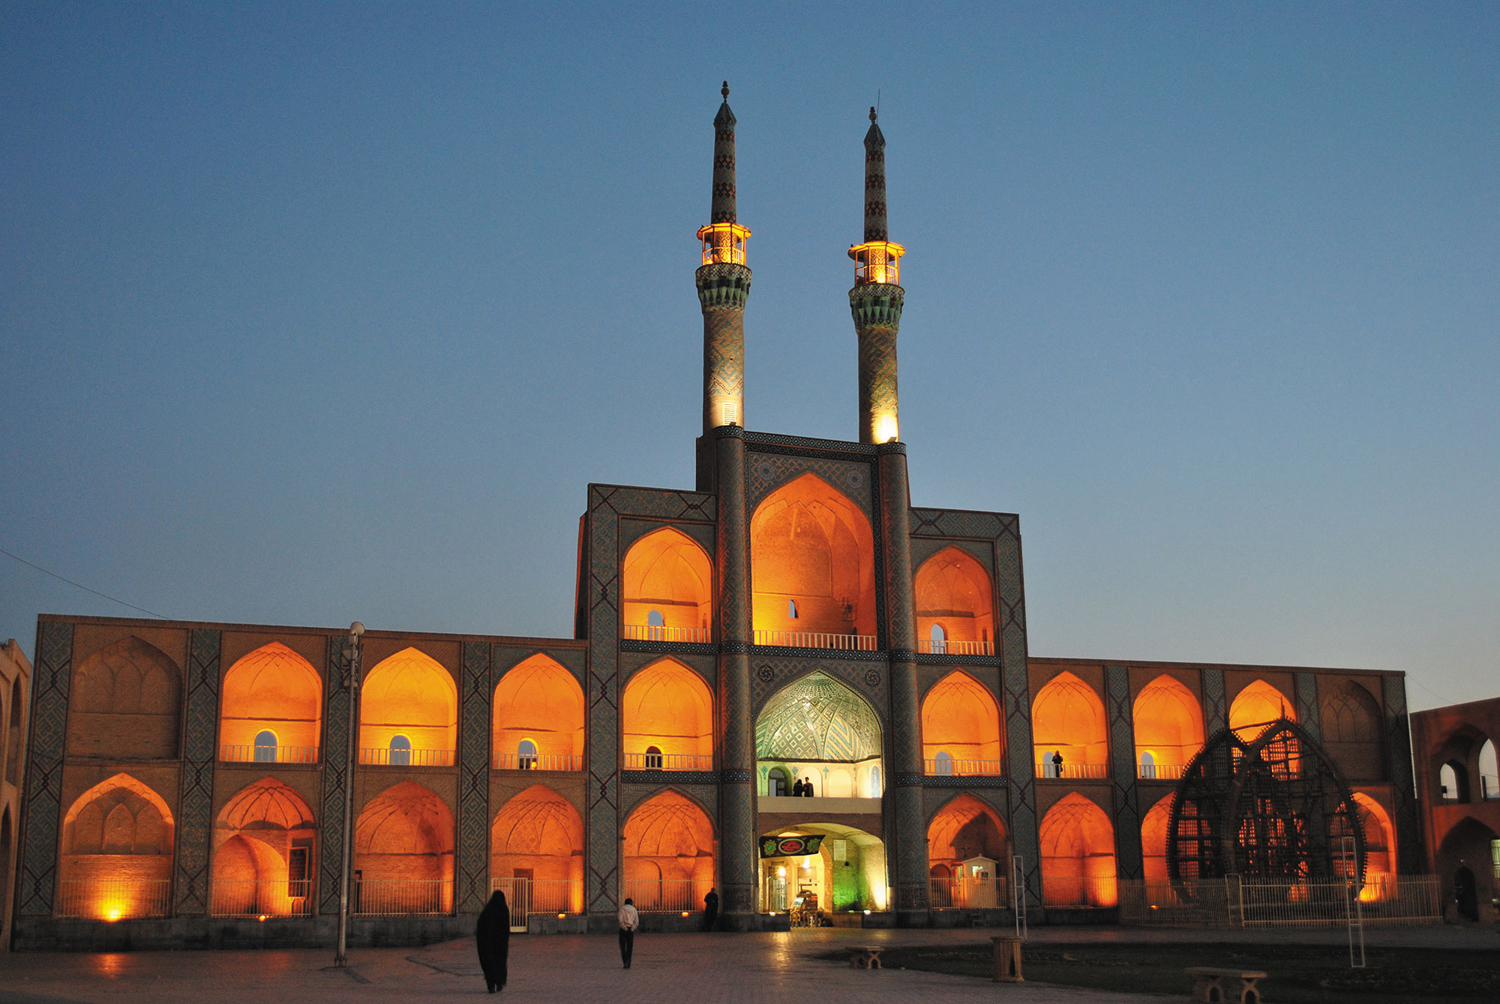 While some tour operators are saying travel to Iran is business as usual, others are postponing and canceling upcoming itineraries to the country. (Photo credit: Intrepid Travel)